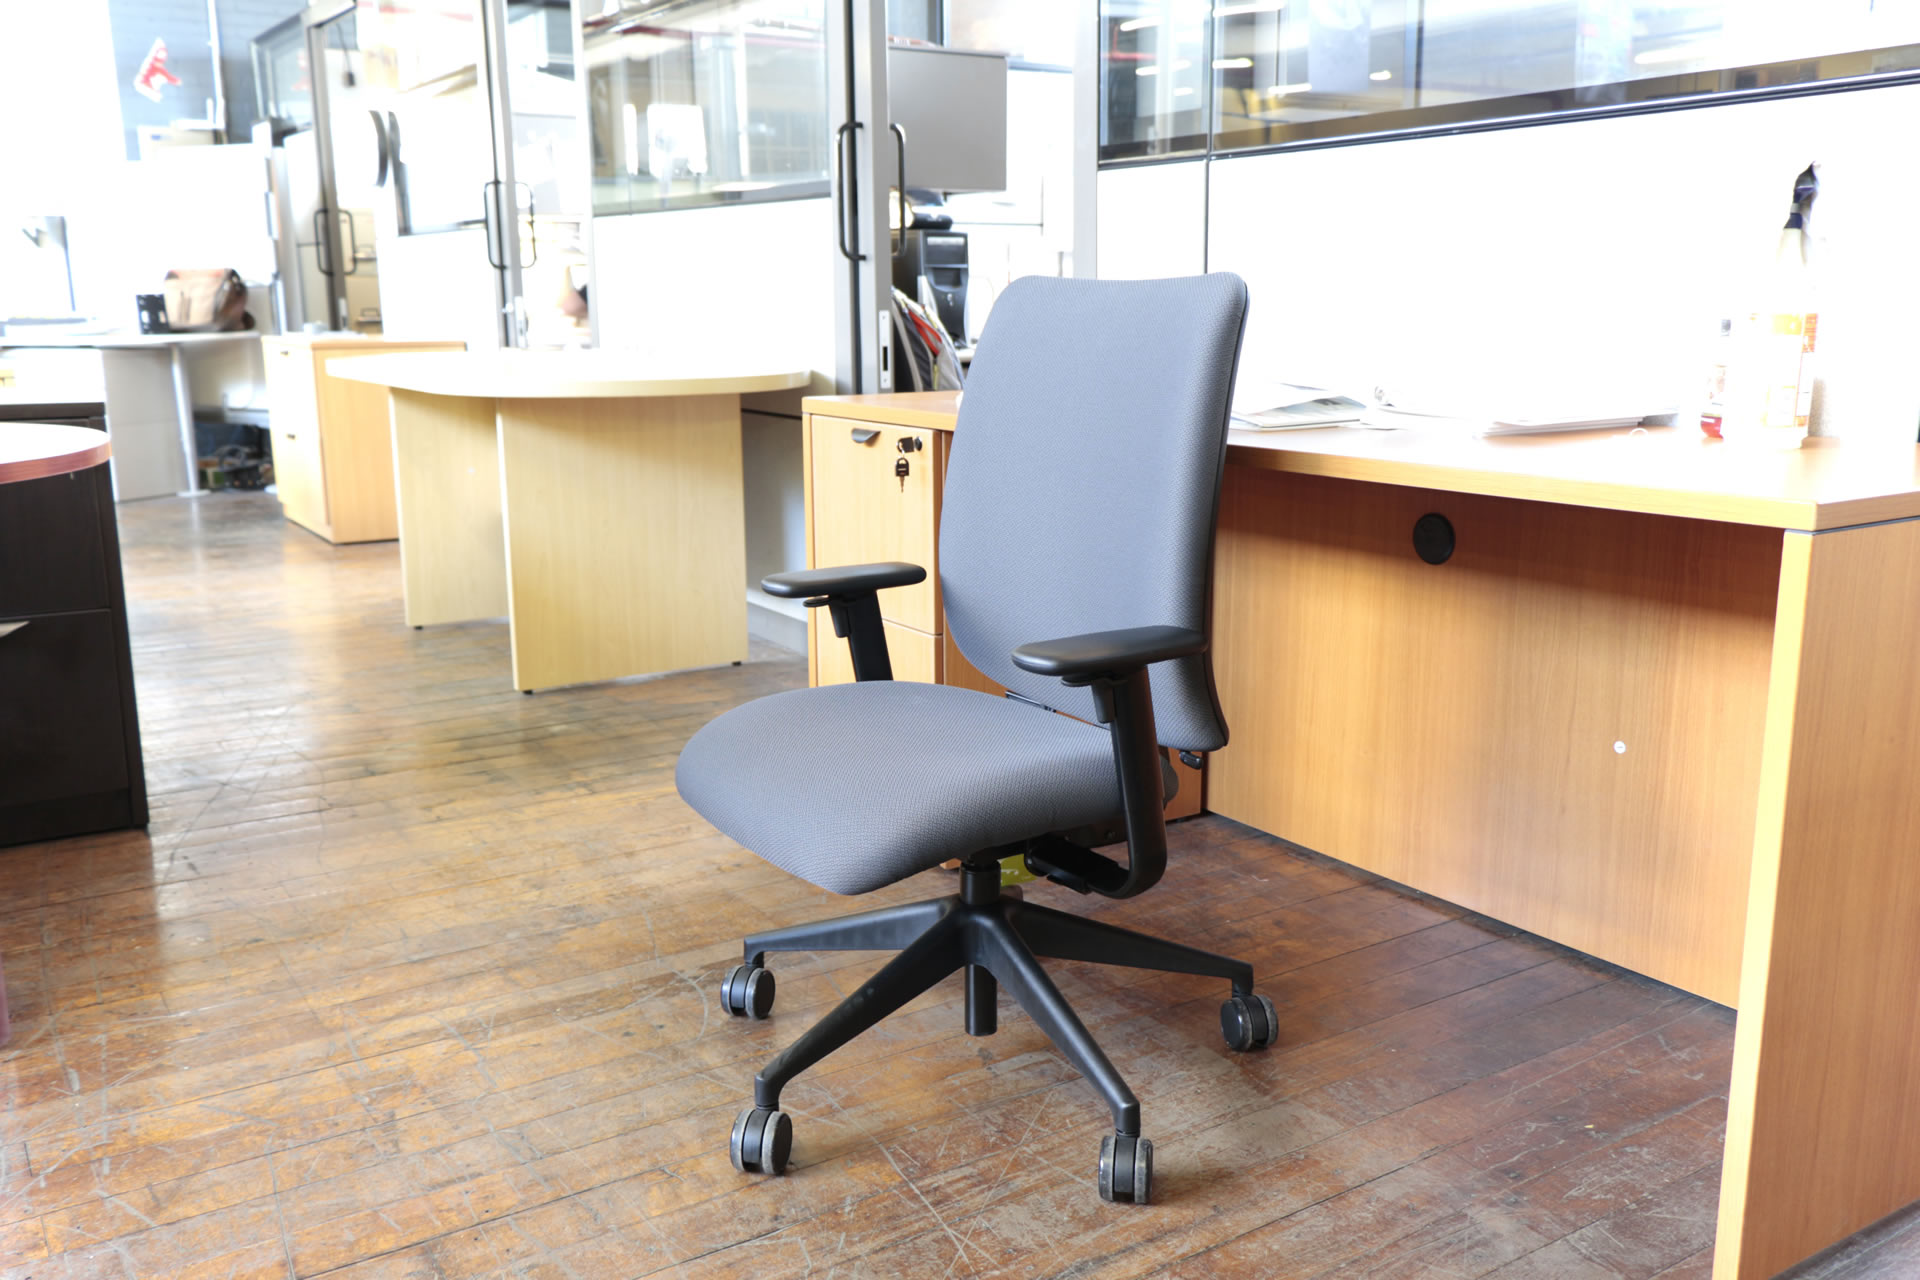 office chair rowing cover rentals houston tx steelcase crew task chairs  peartree furniture